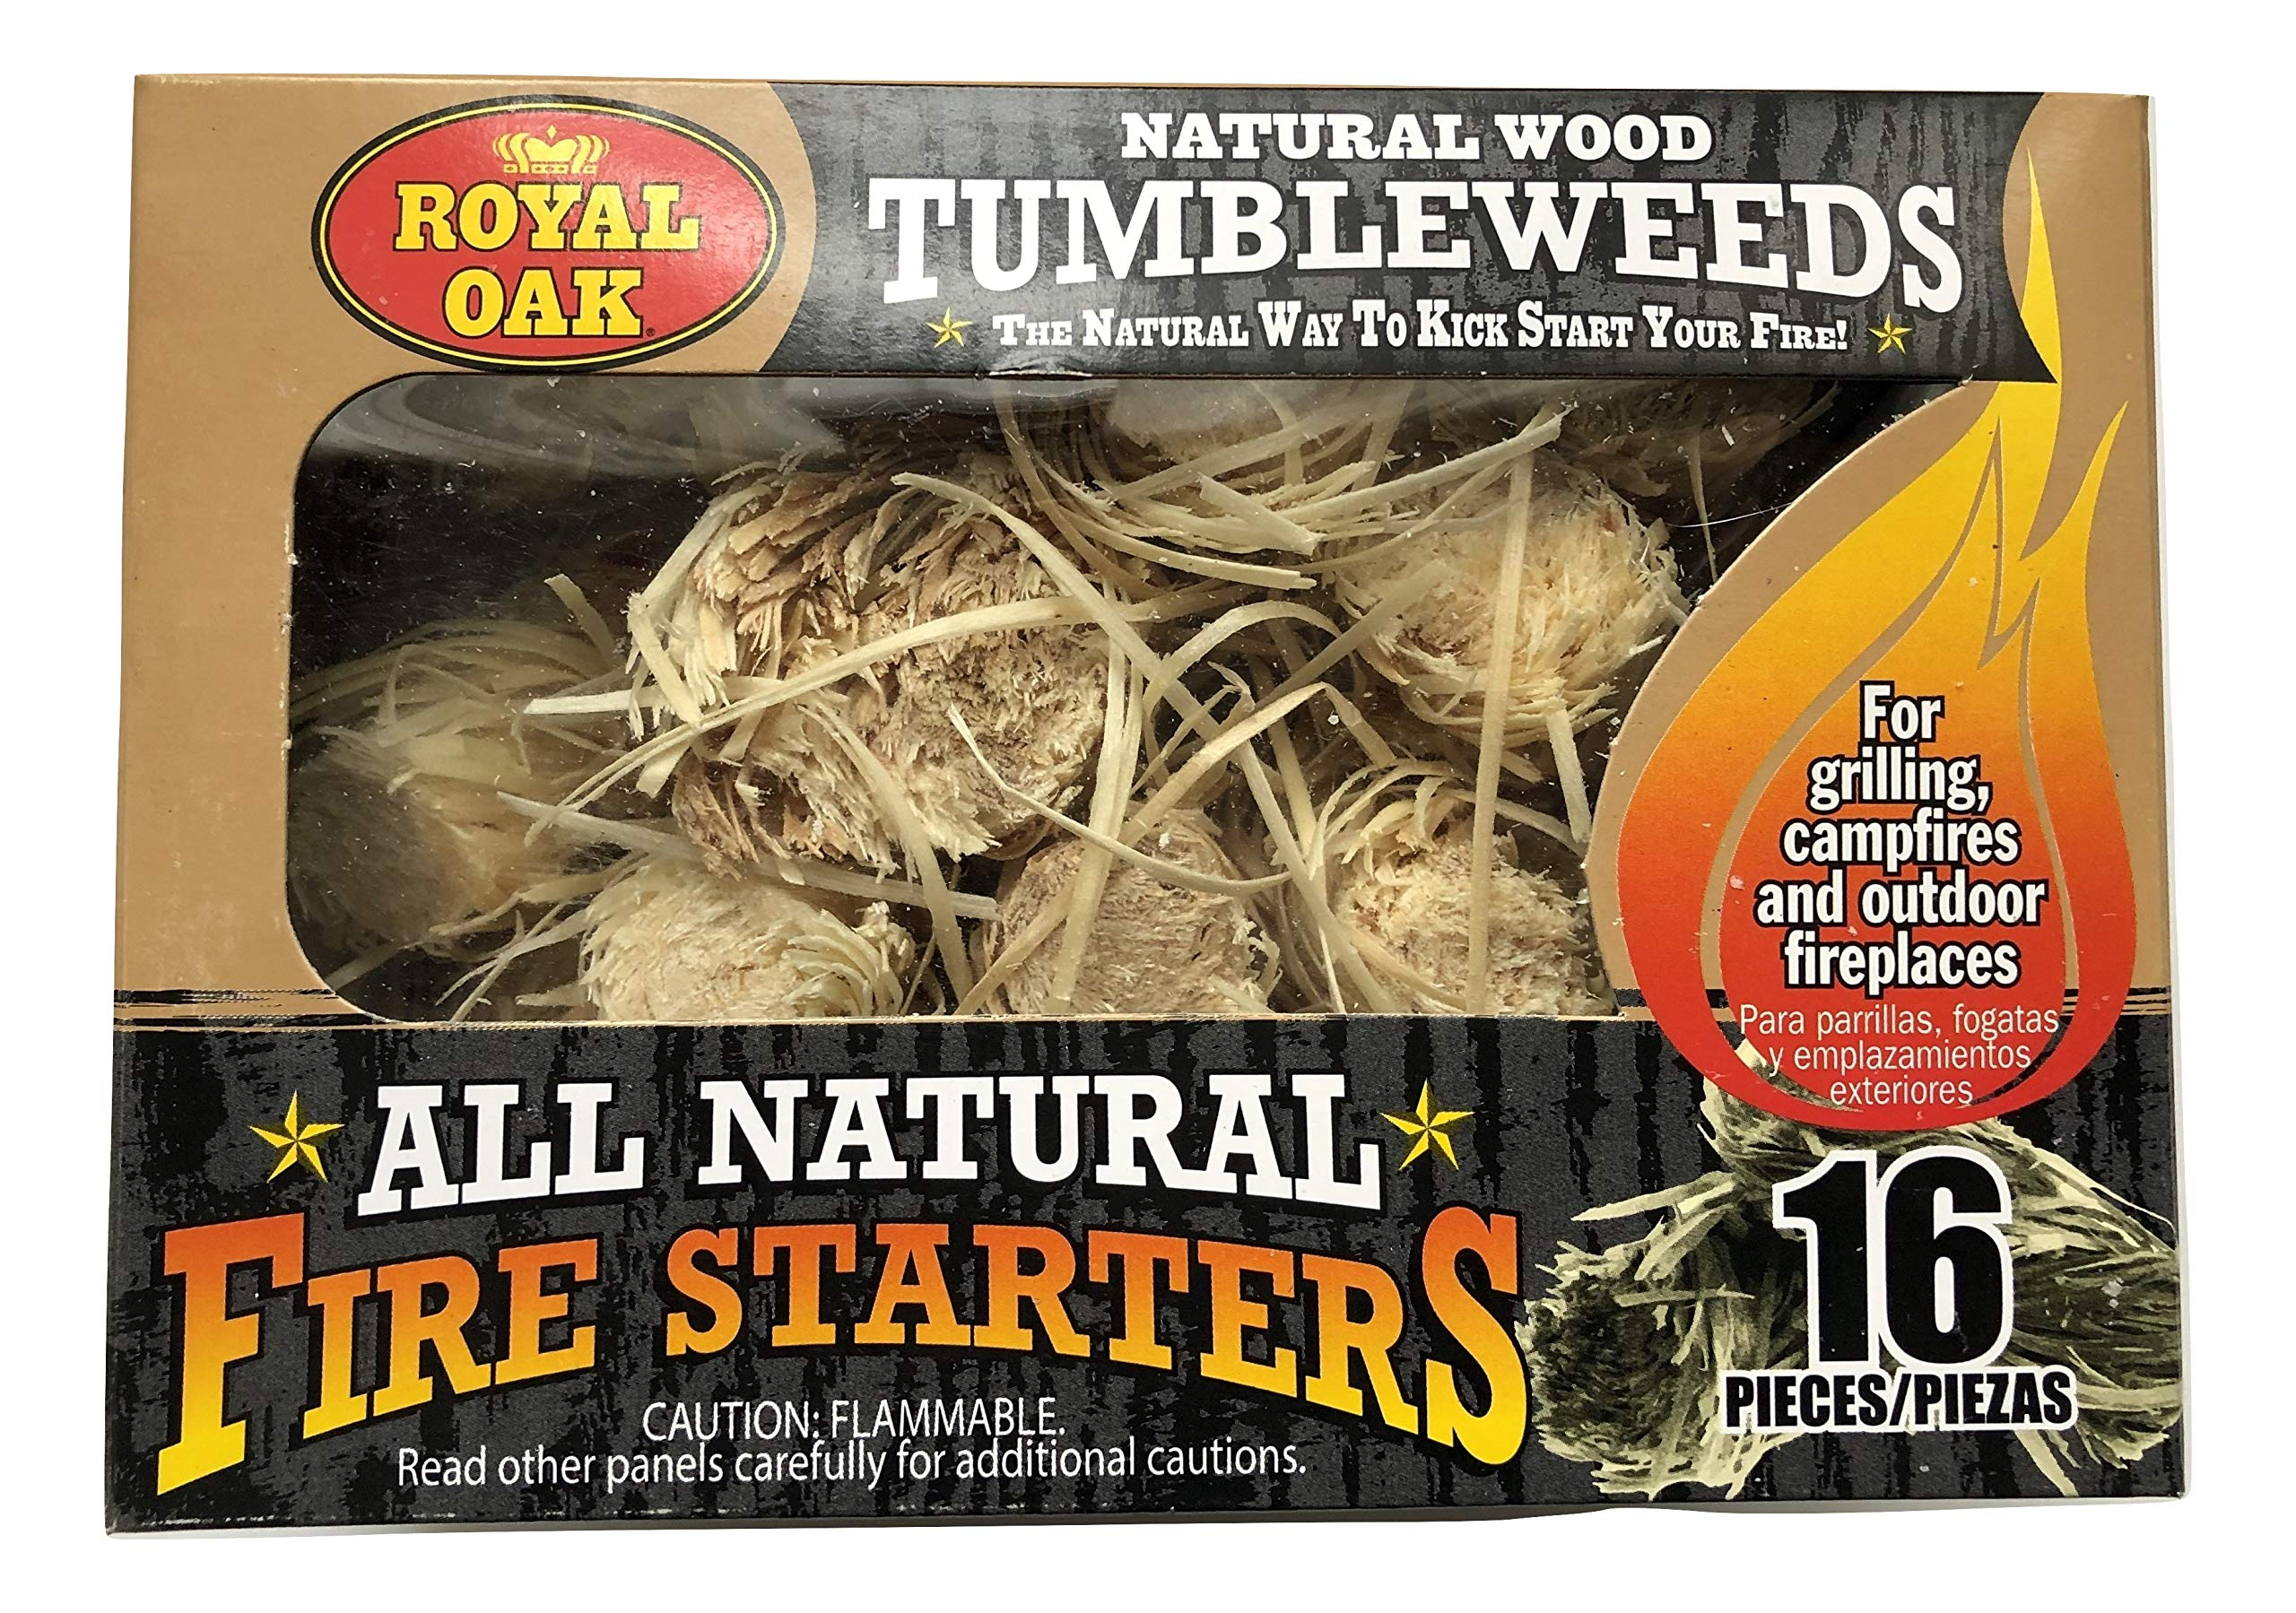 Royal Oak All Natural Fire Starters Natural Wood Tumbleweeds - 16 Pieces by Royal Oak